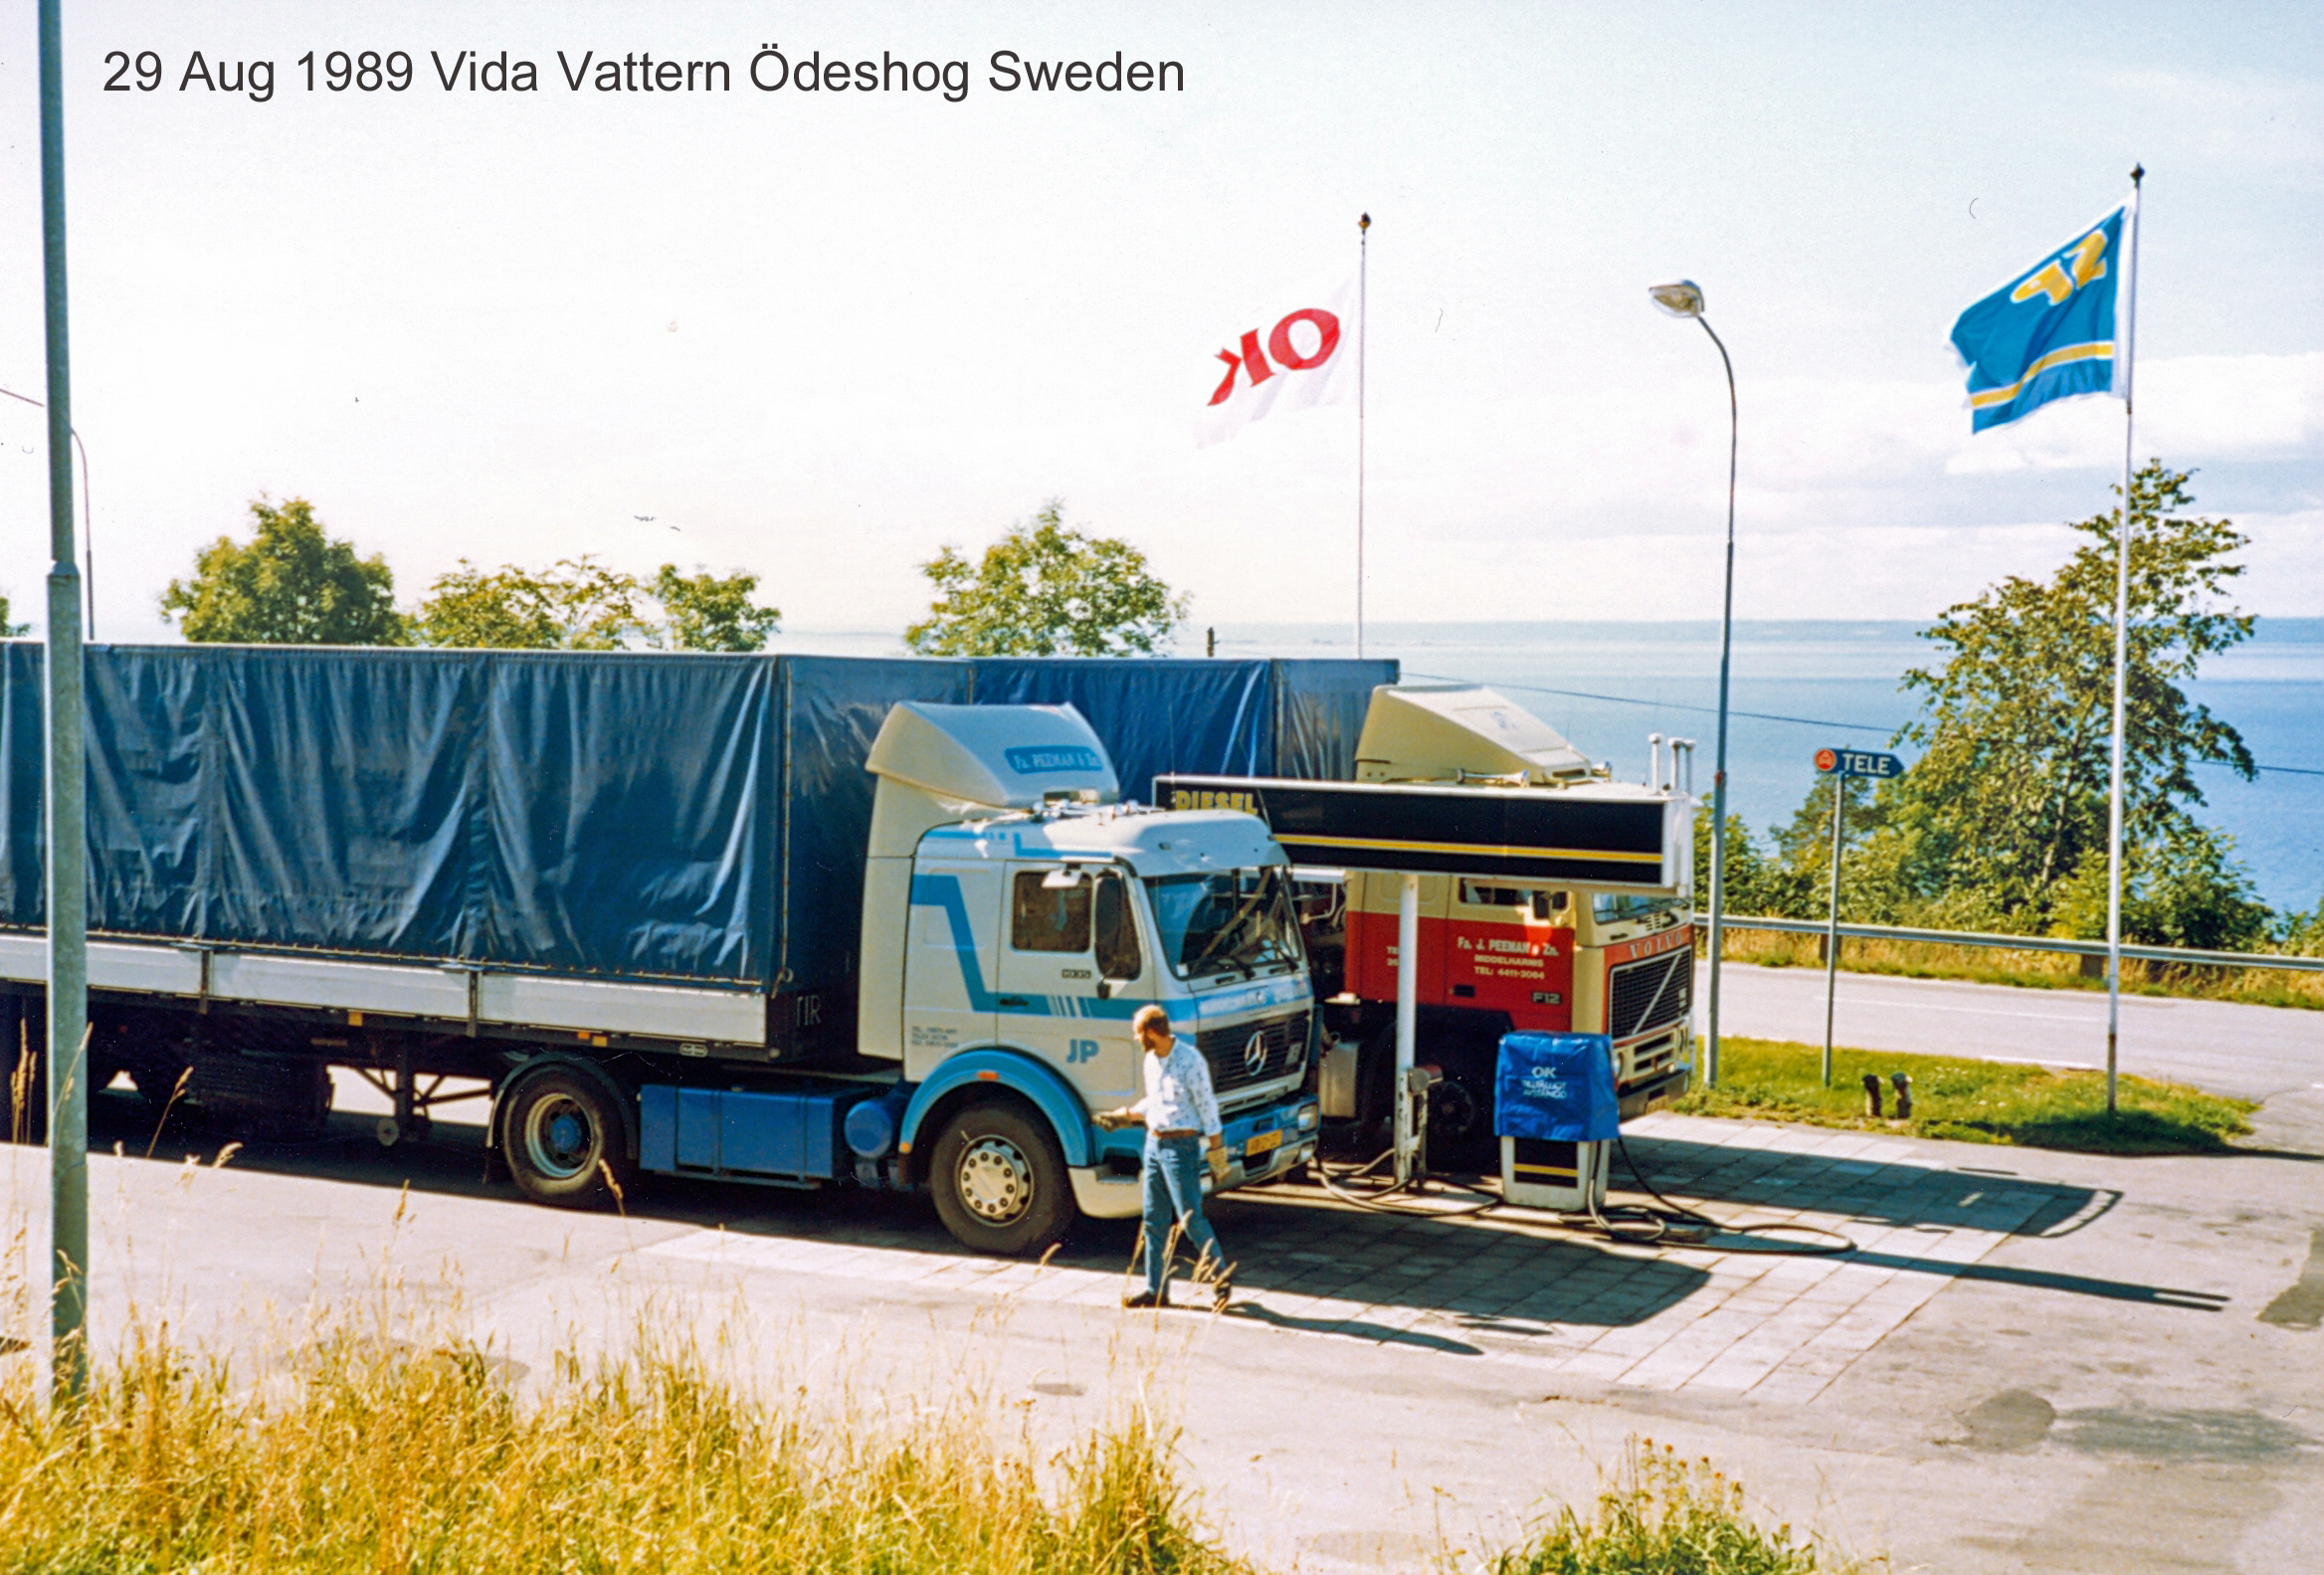 Peeman-Truck-Gasoline-stop-E4-northbound-Granna-Sweden-001--29-aug-1989